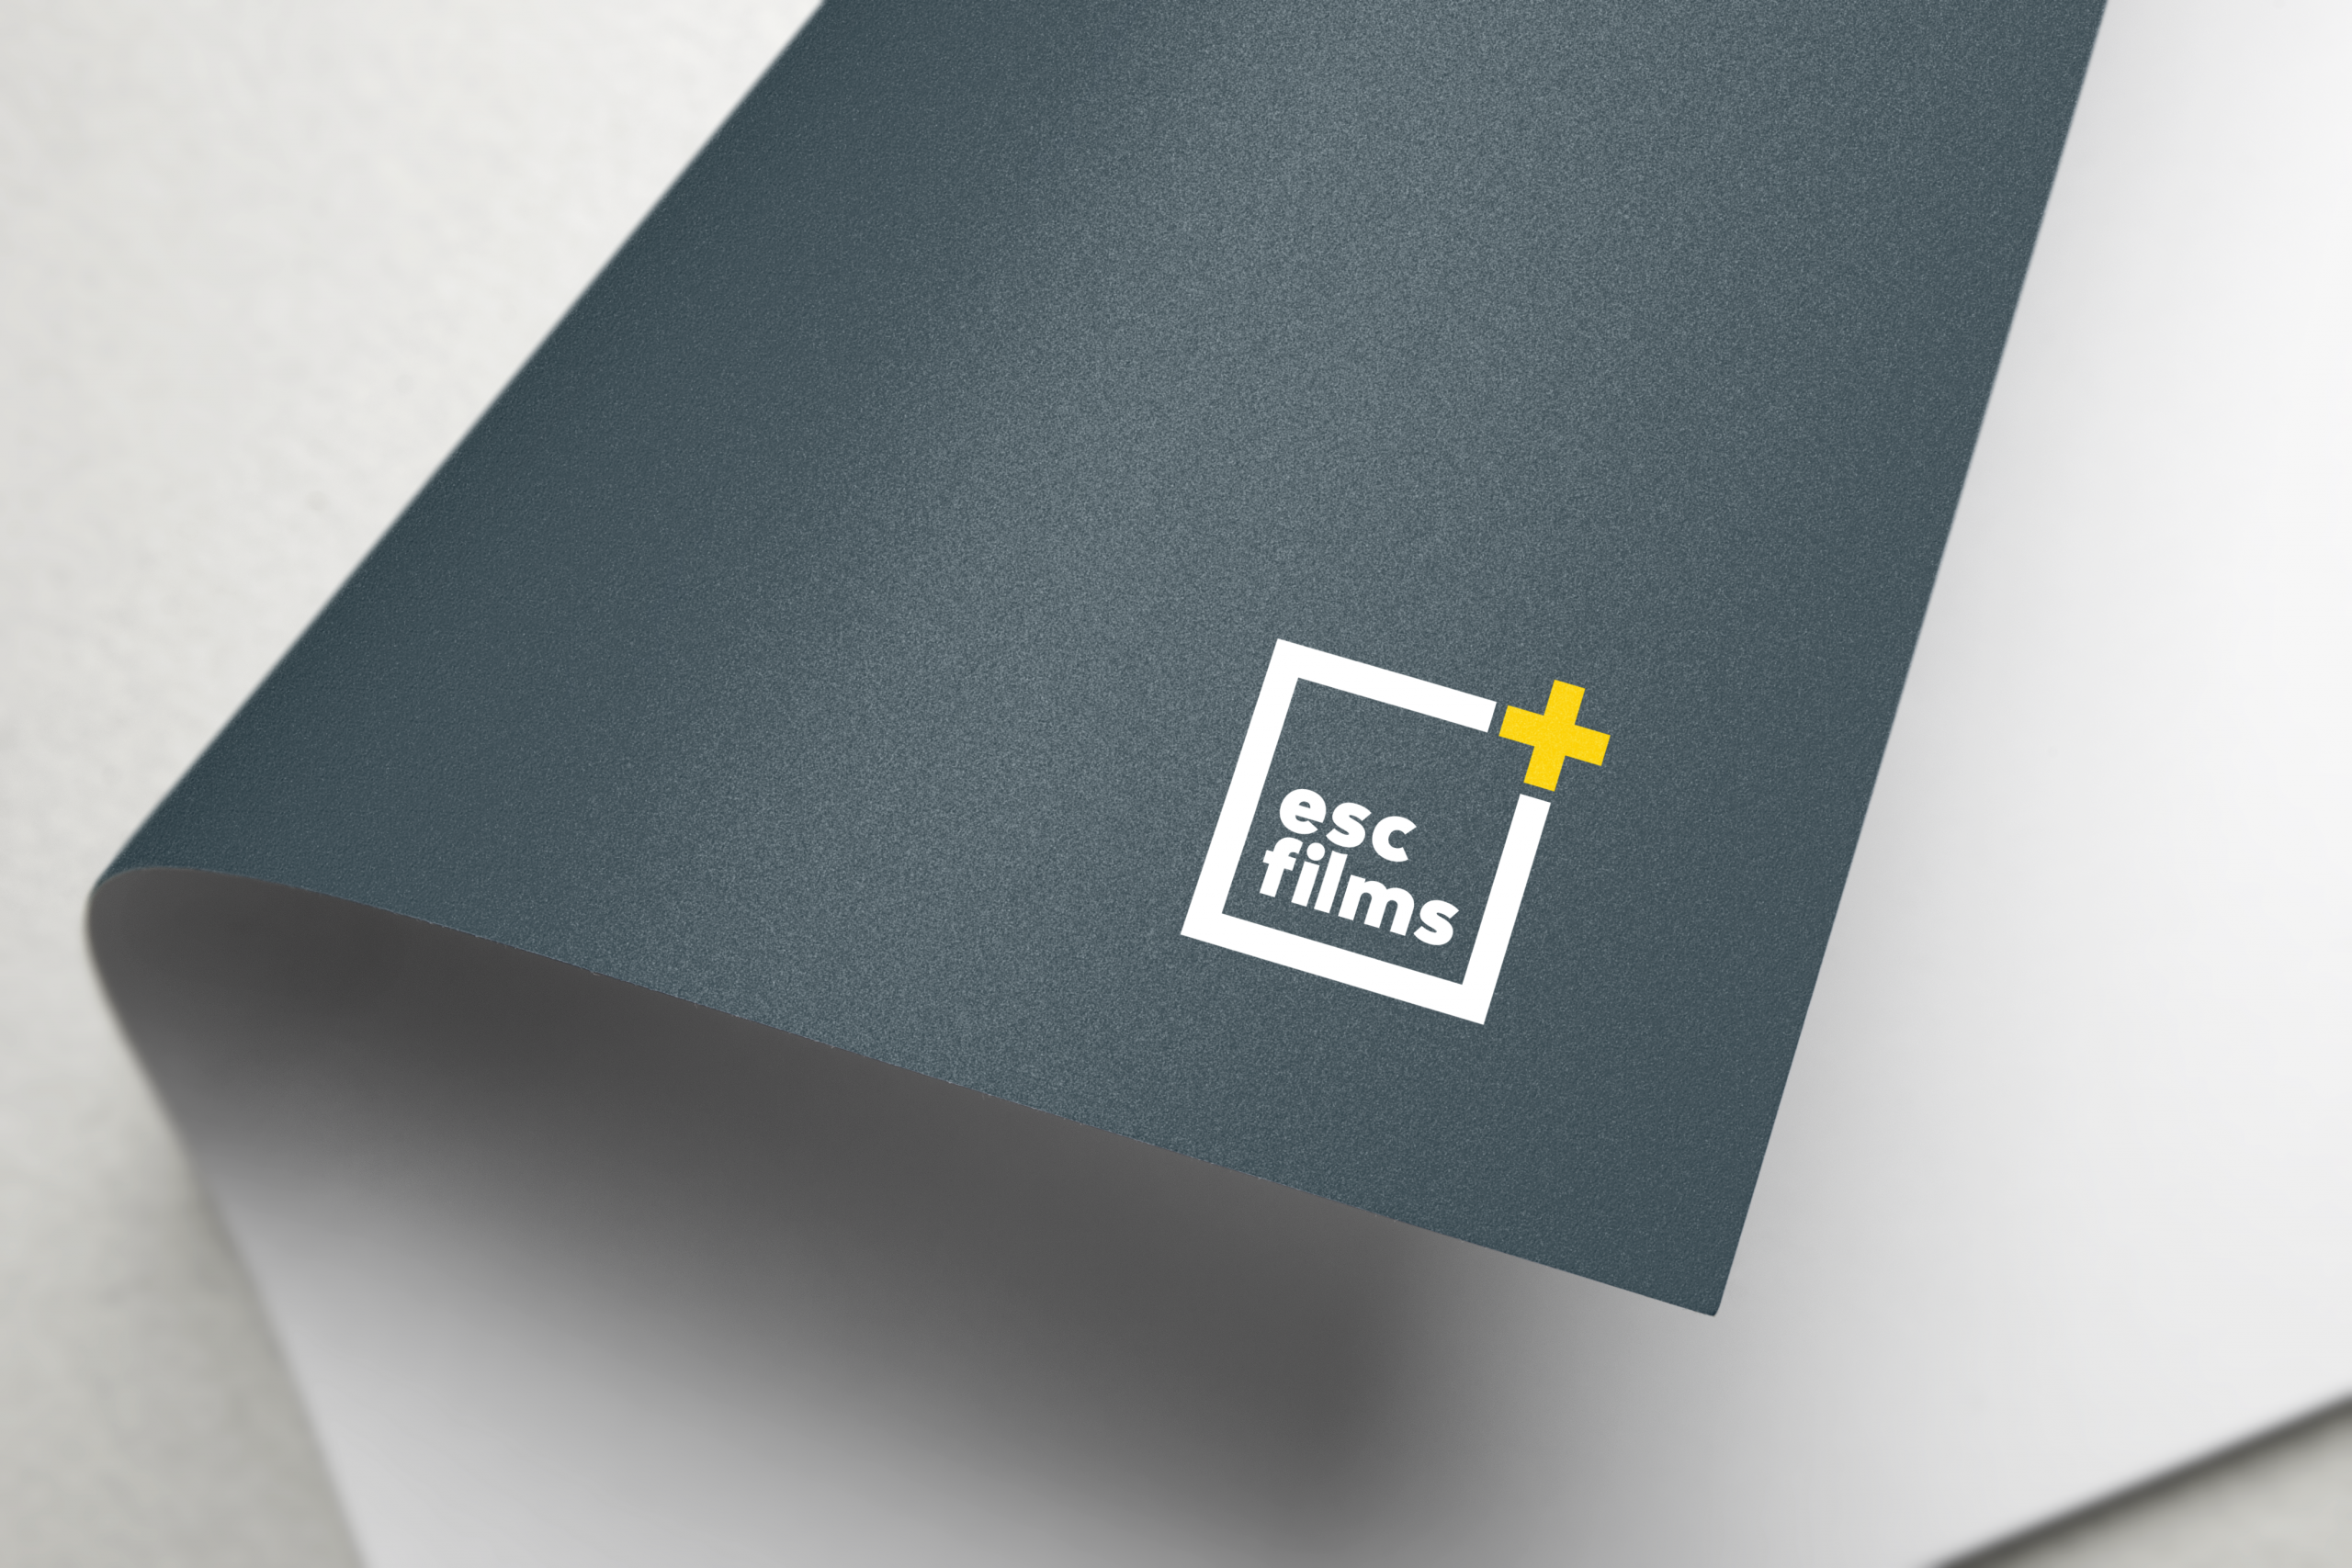 grey rolled up letter with esc films logo in white square with yellow plus sign at top right corner